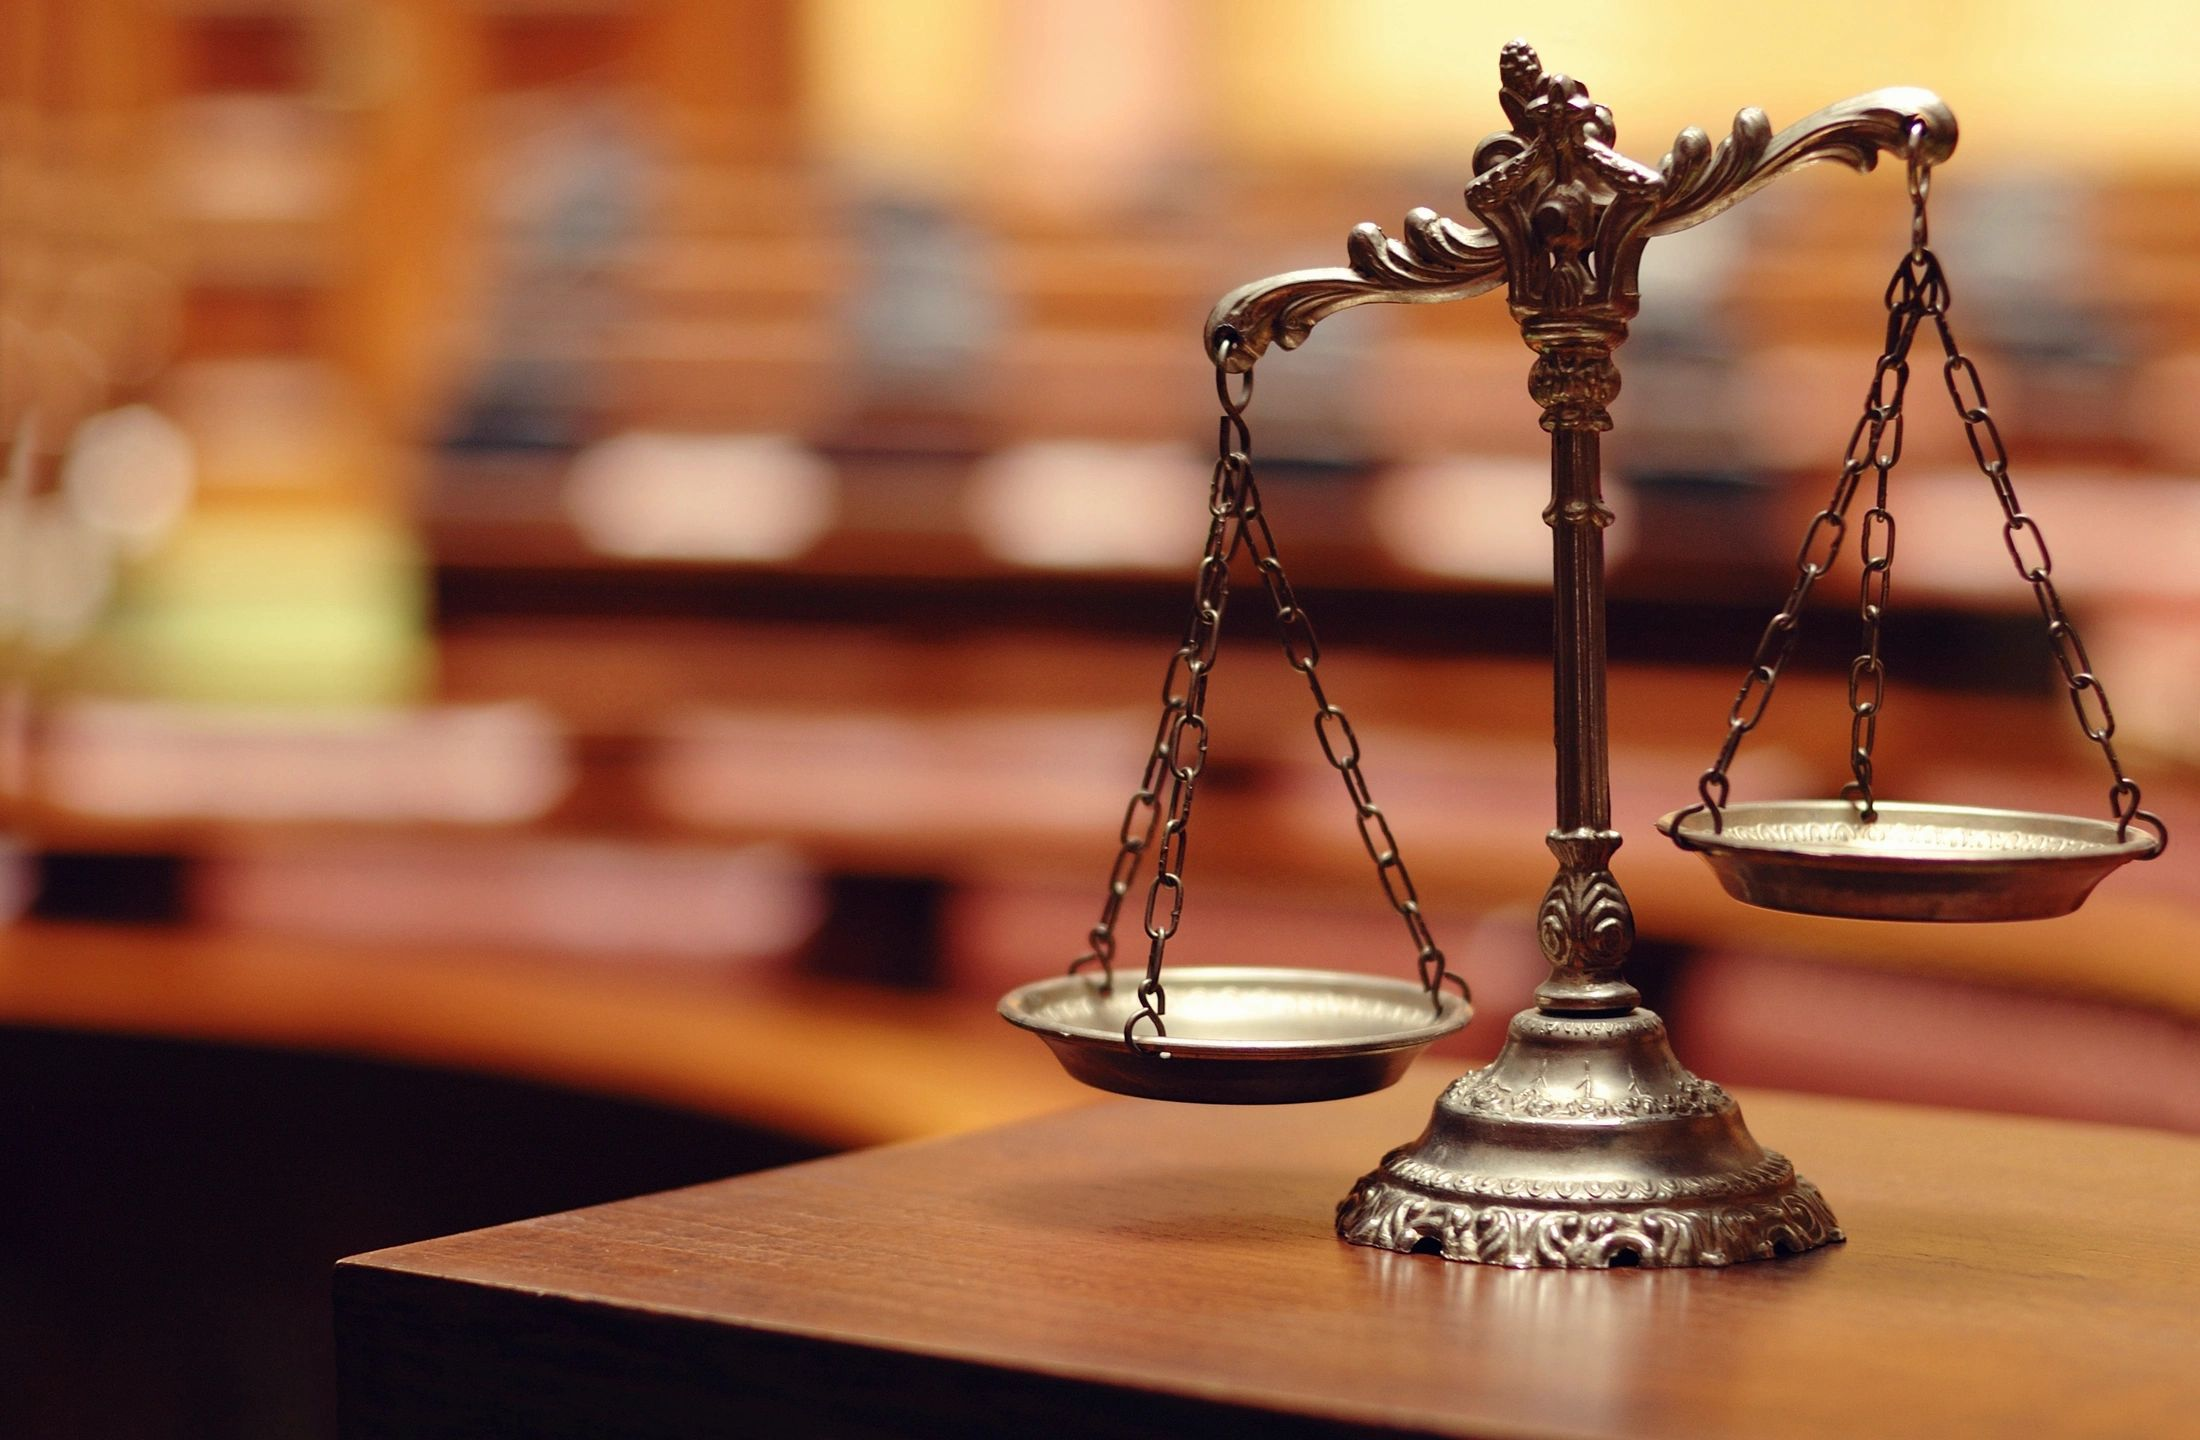 Scales of justice for legal counseling and legal services.